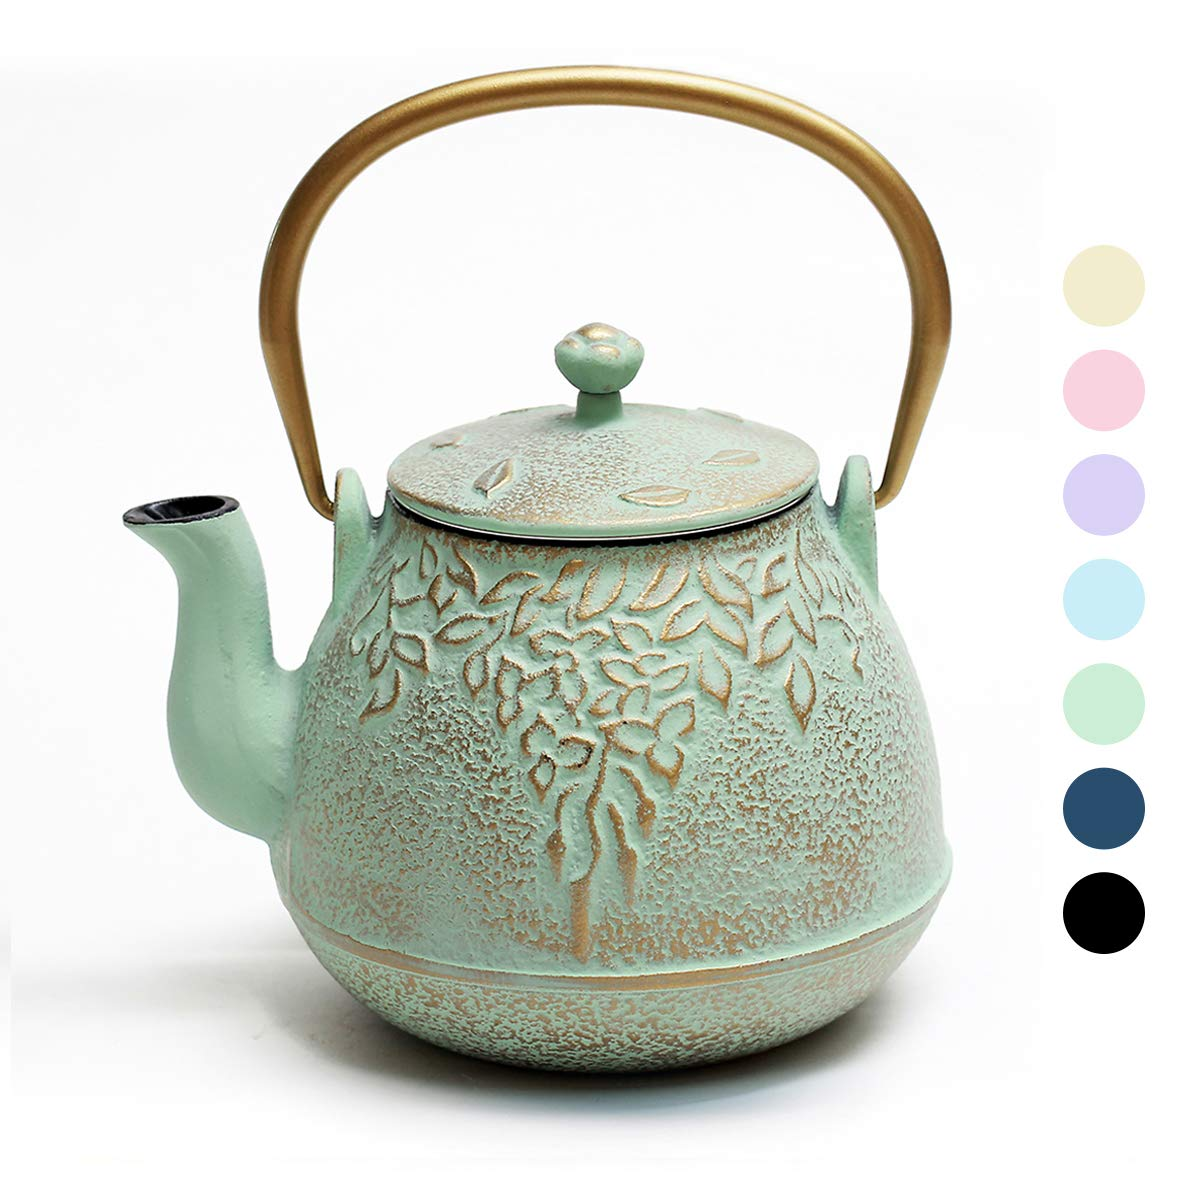 Tea Kettle, TOPTIER Japanese Cast Iron Teapot with Infuser for Loose Leaf and Tea Bags, Stovetop Safe Cast Iron Tea Kettle Coated with Enameled Interior for 40 oz (1200 ml), Light Green